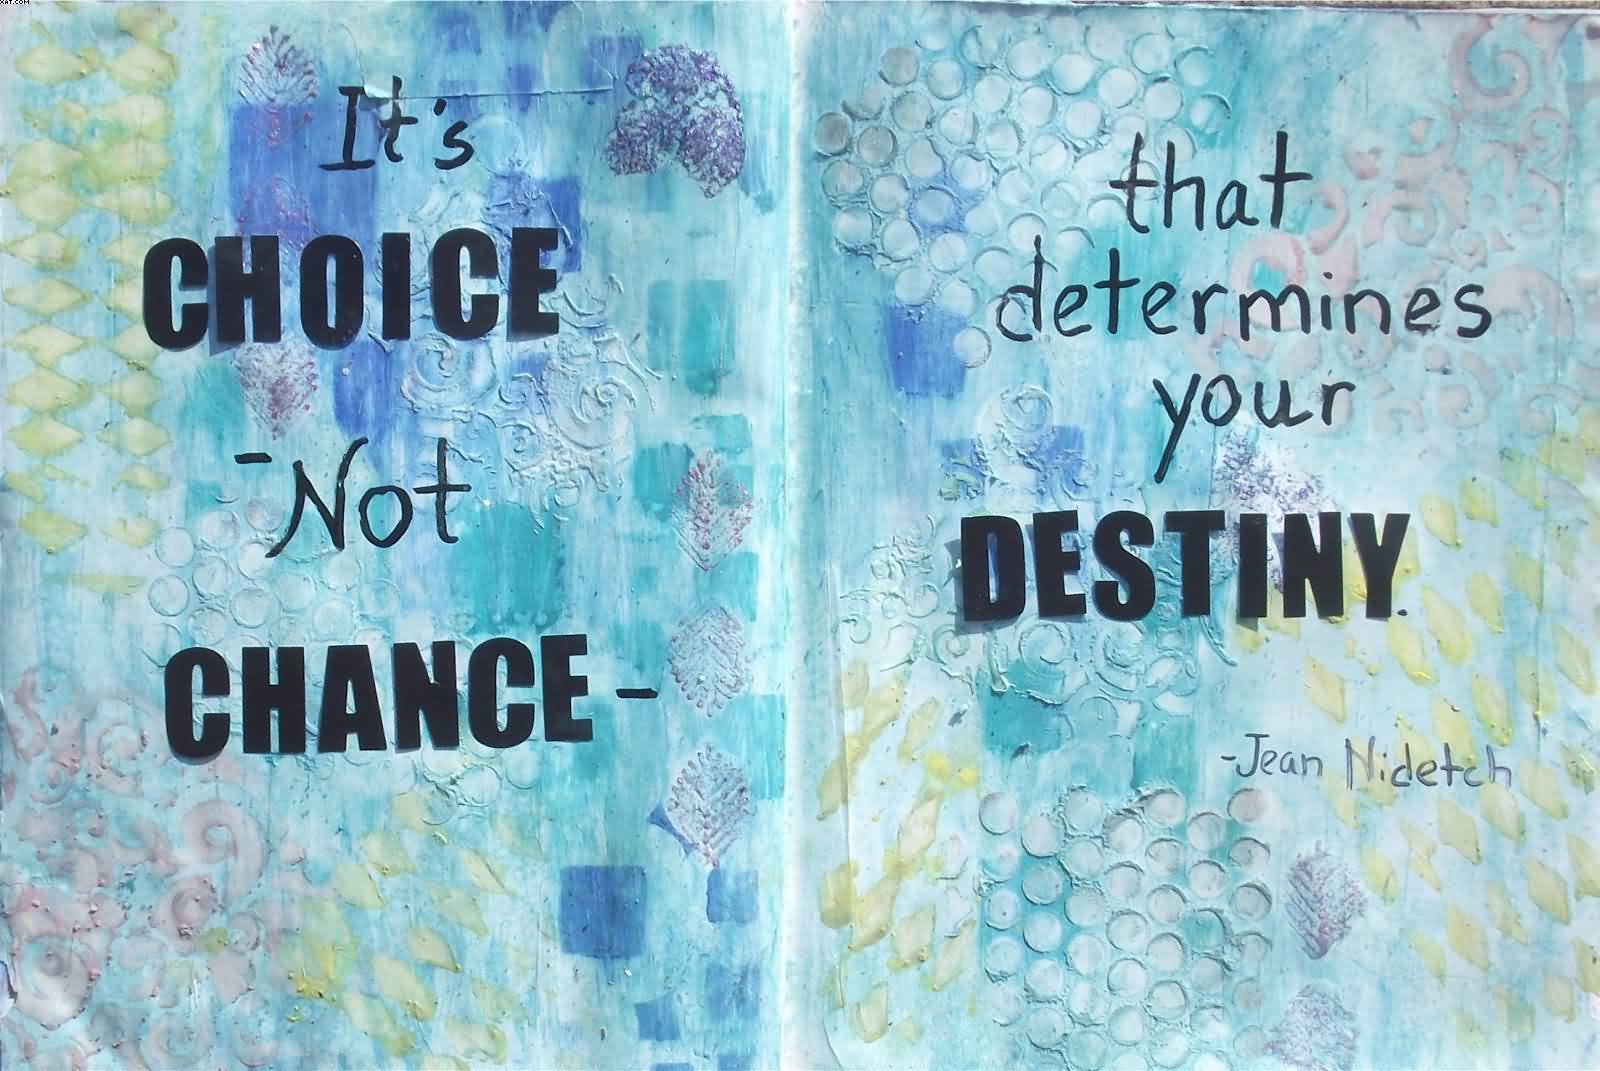 It's Choice Not Chance